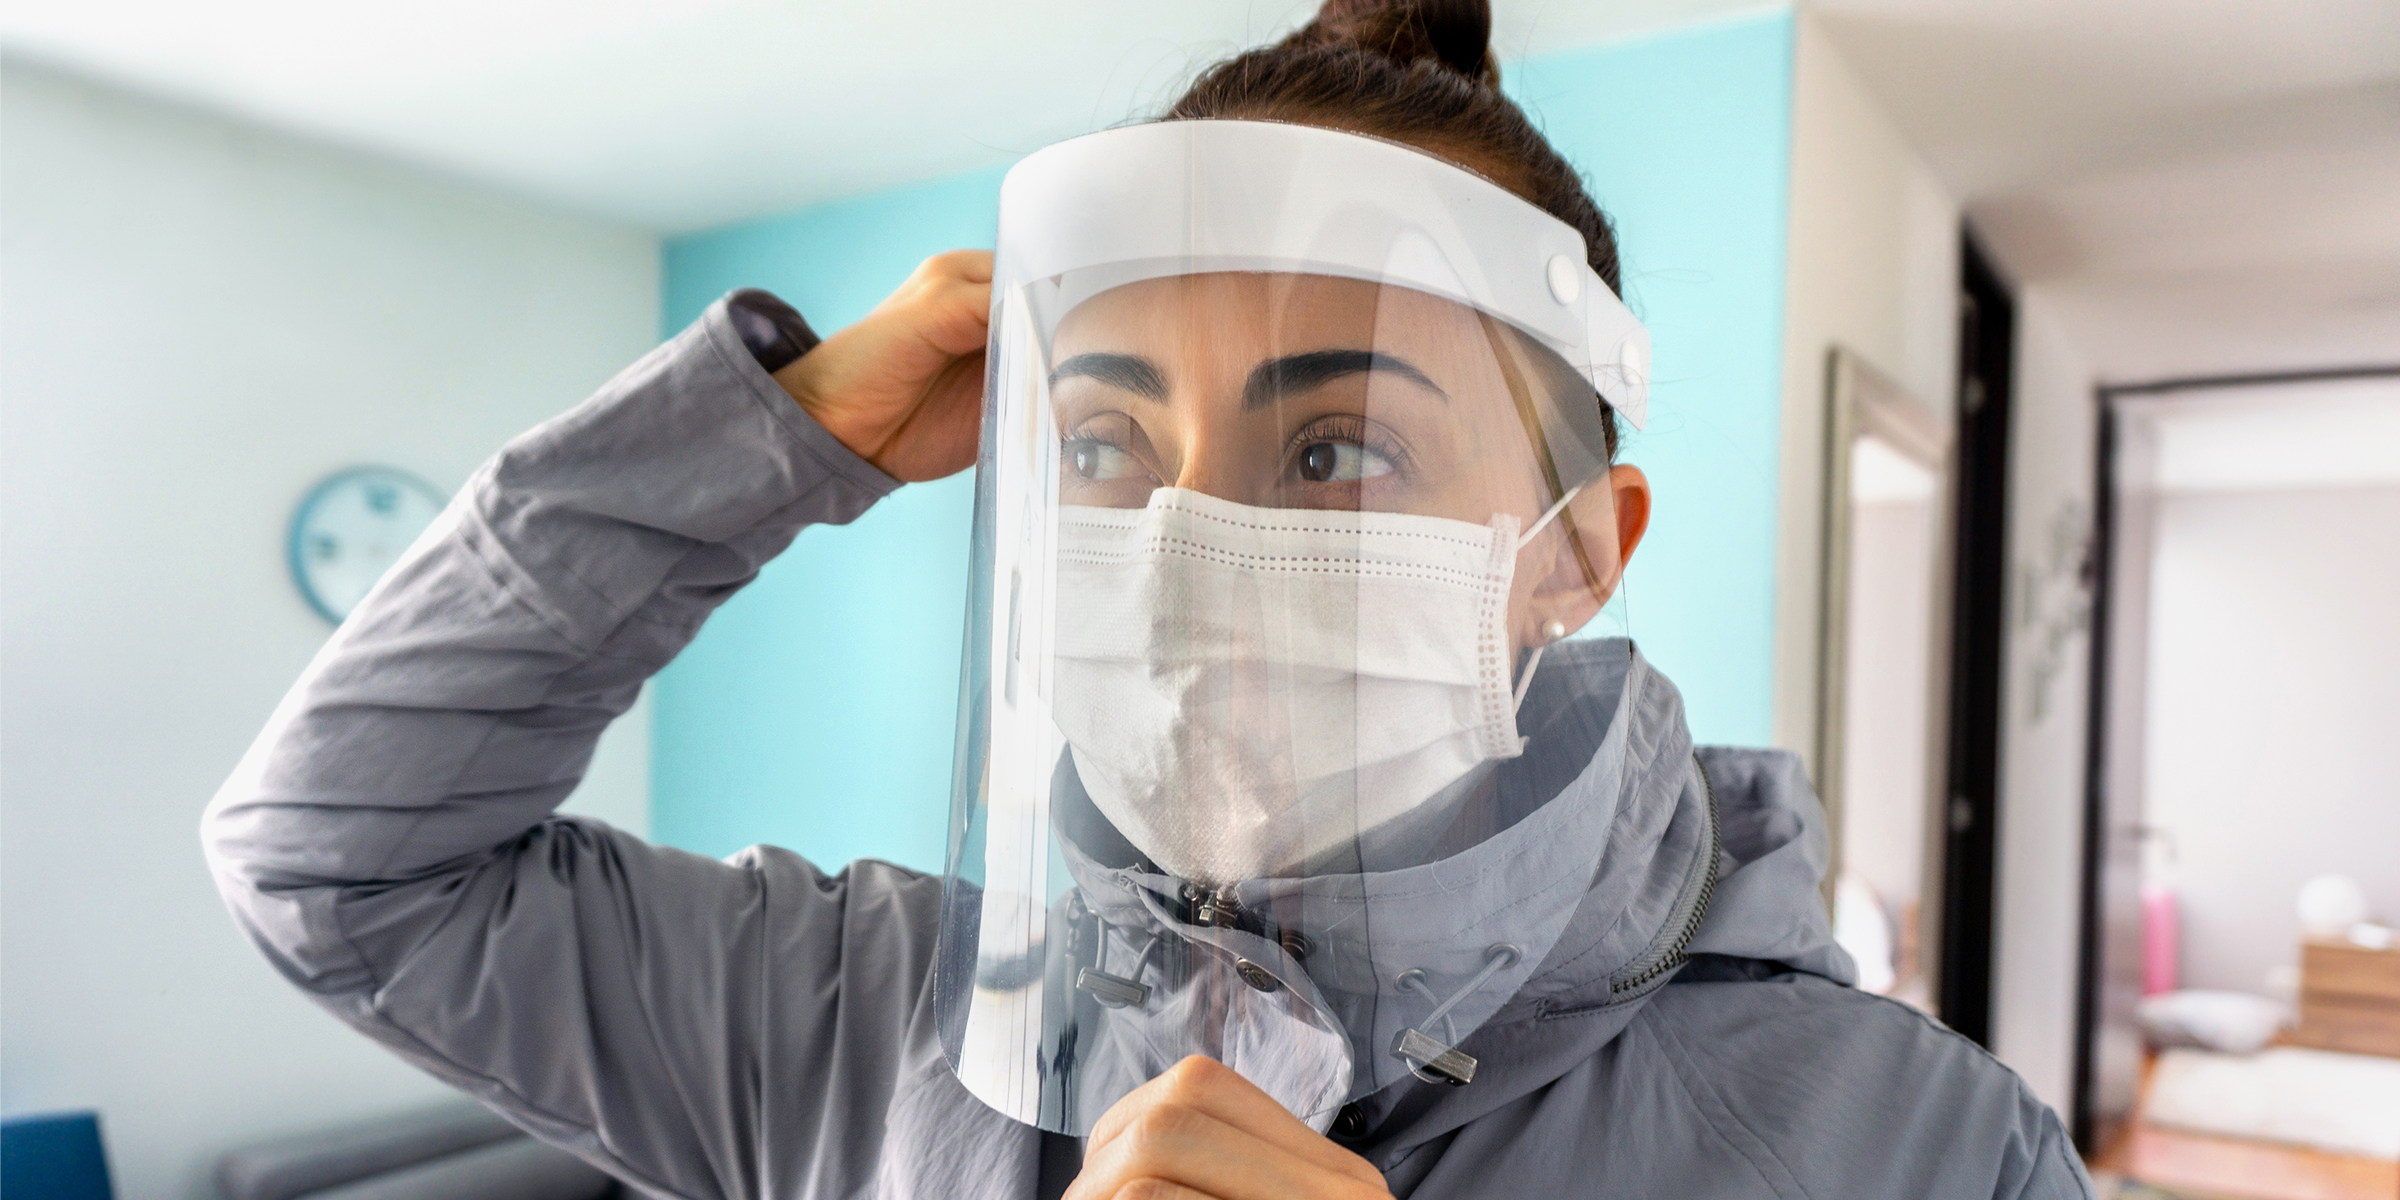 Should you buy a face shield? Here's what the experts say.